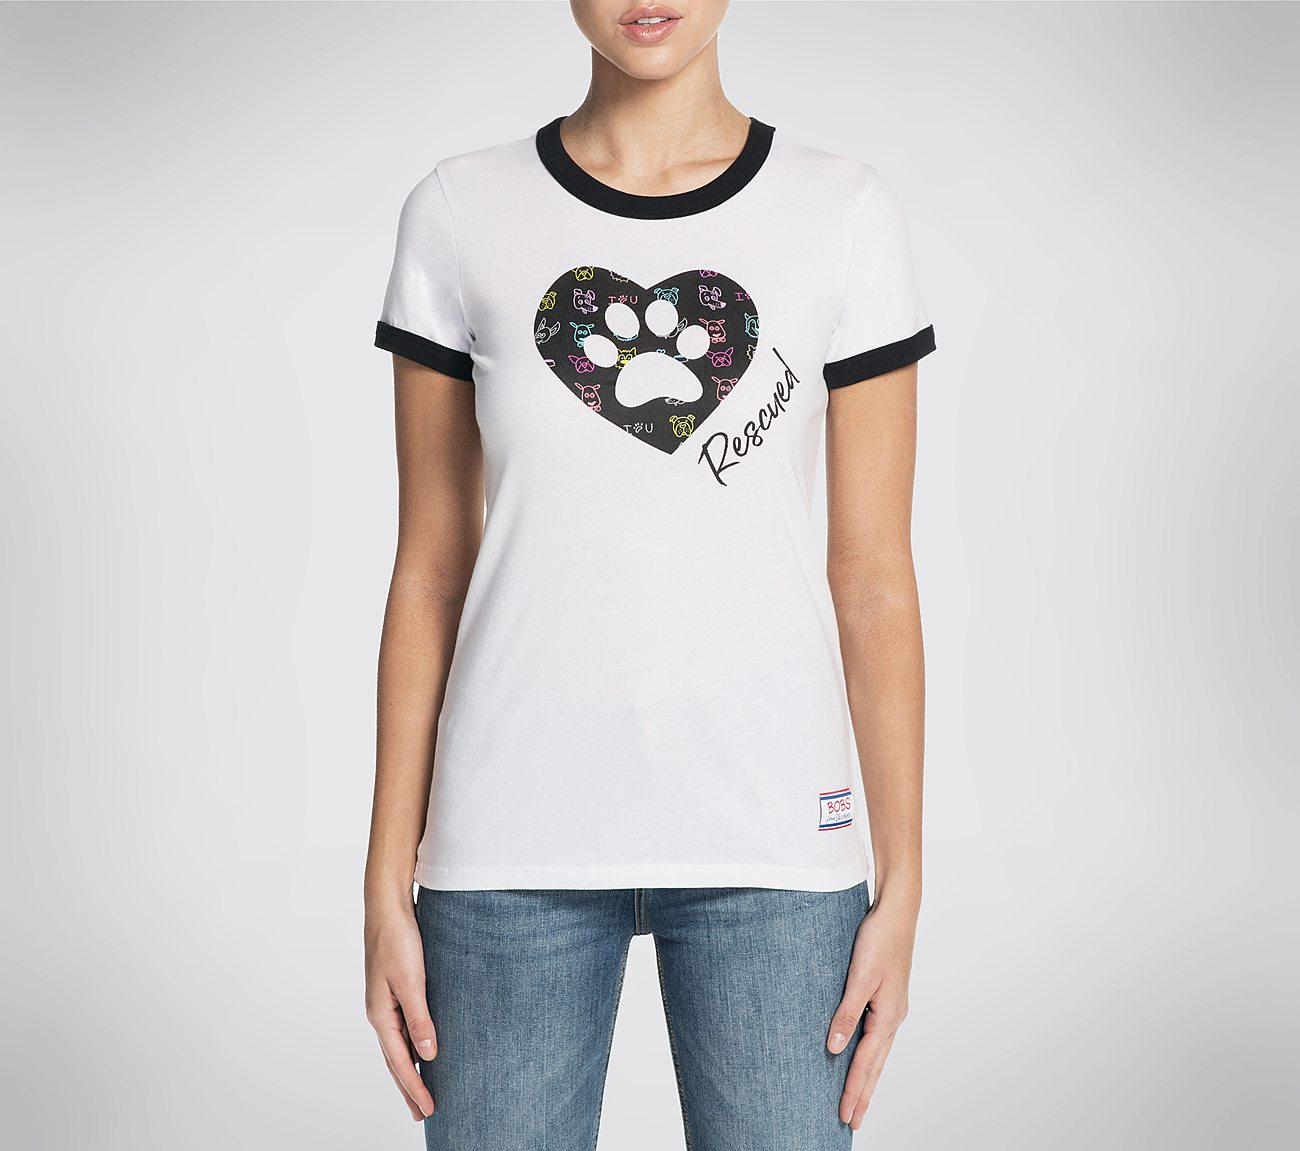 BOBS Rescued Ringer Tee Shirt